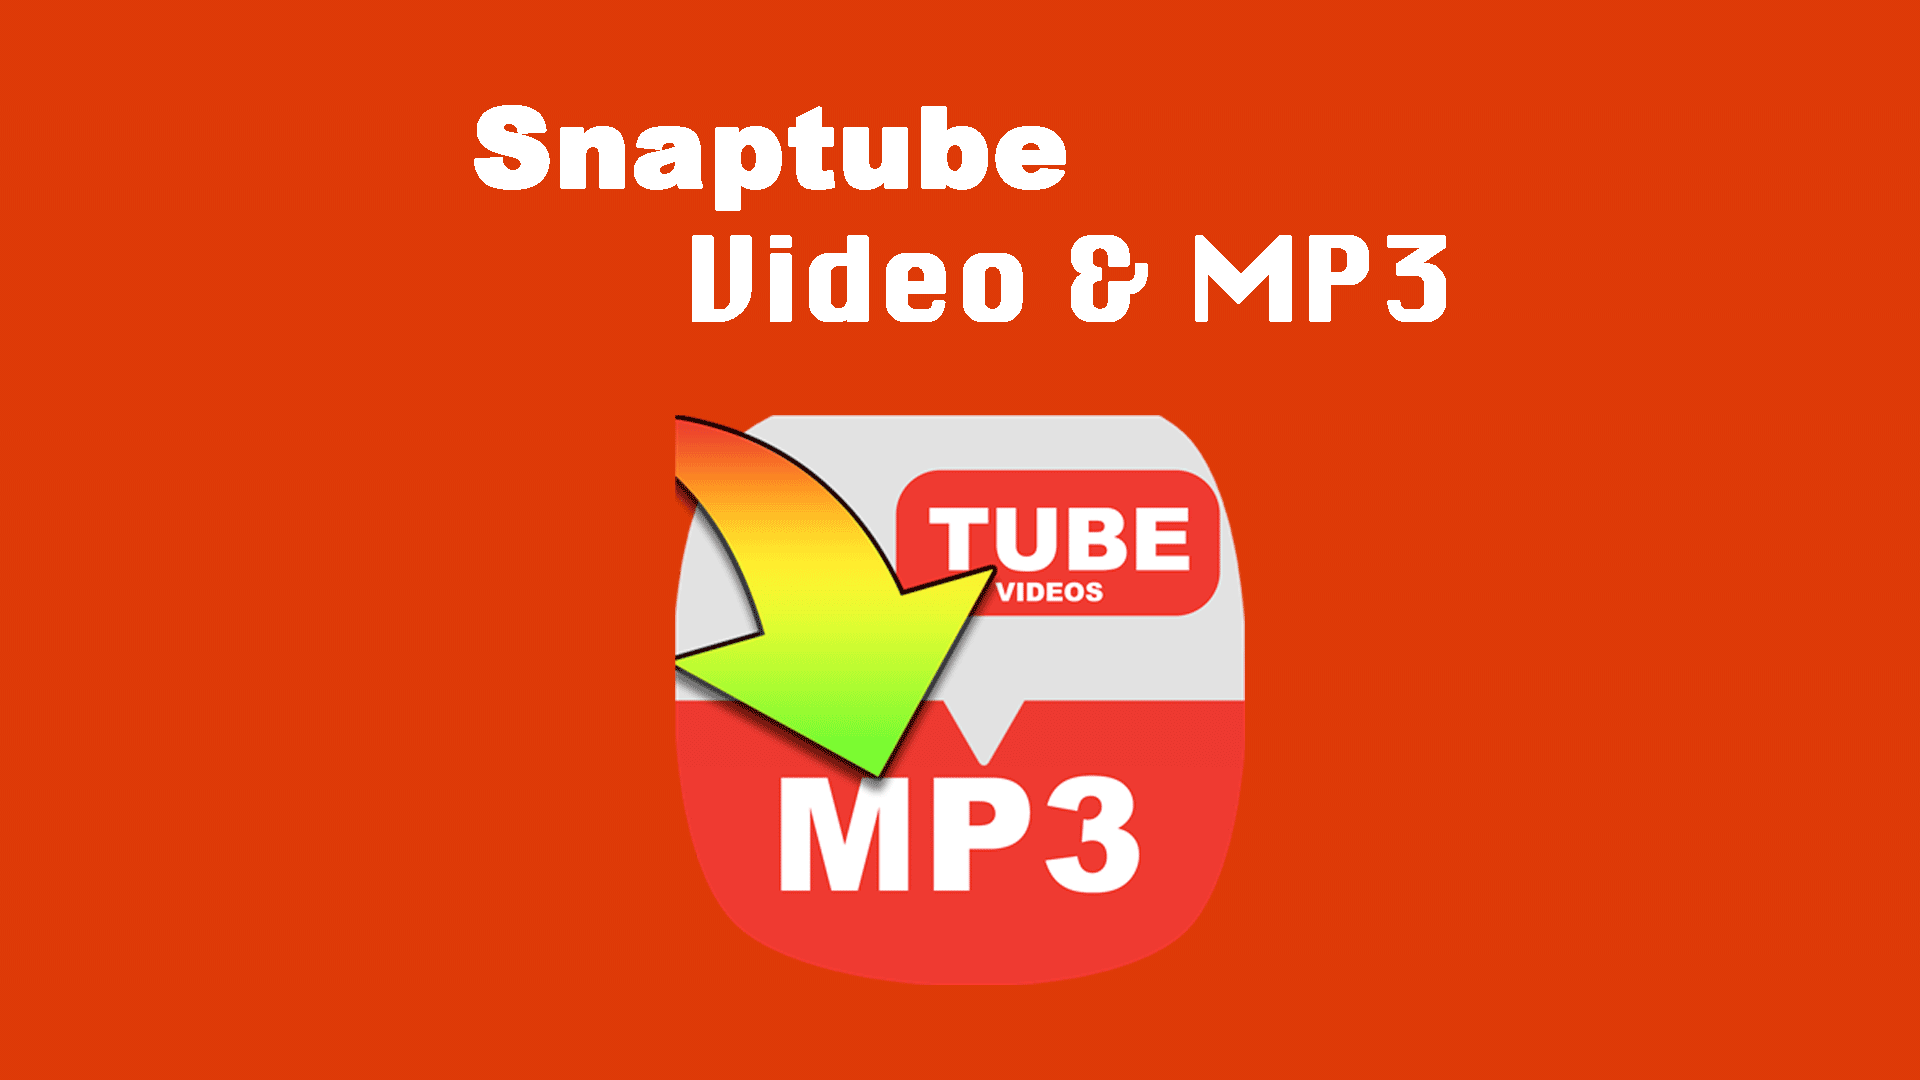 android app to convert youtube videos to mp3